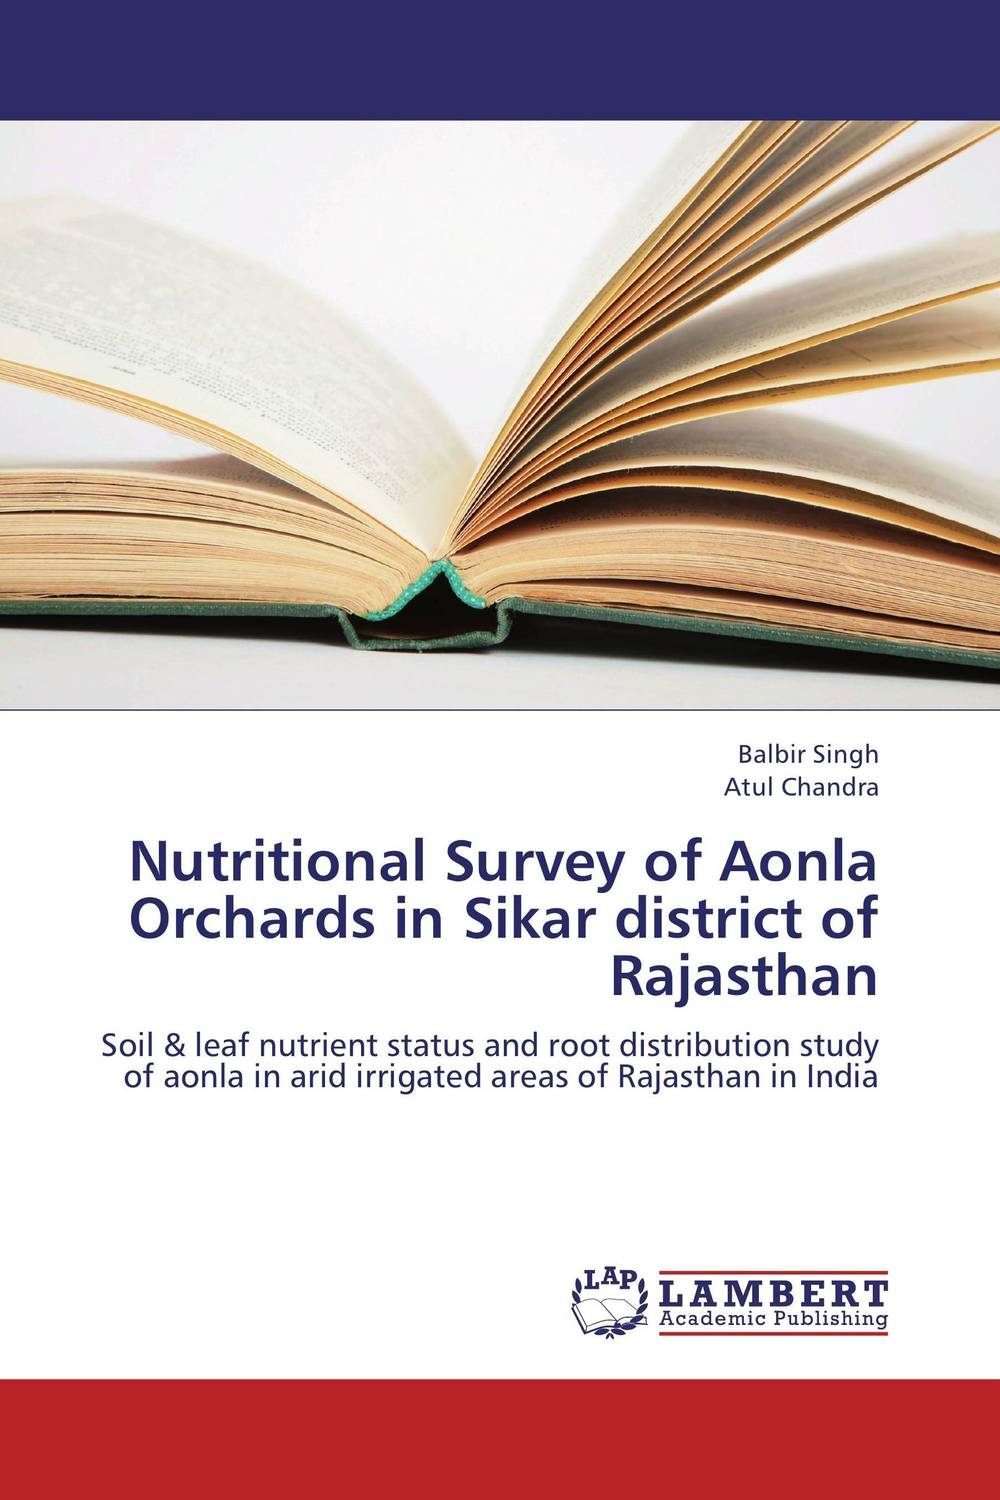 Nutritional Survey of Aonla Orchards in Sikar district of Rajasthan videoblogging